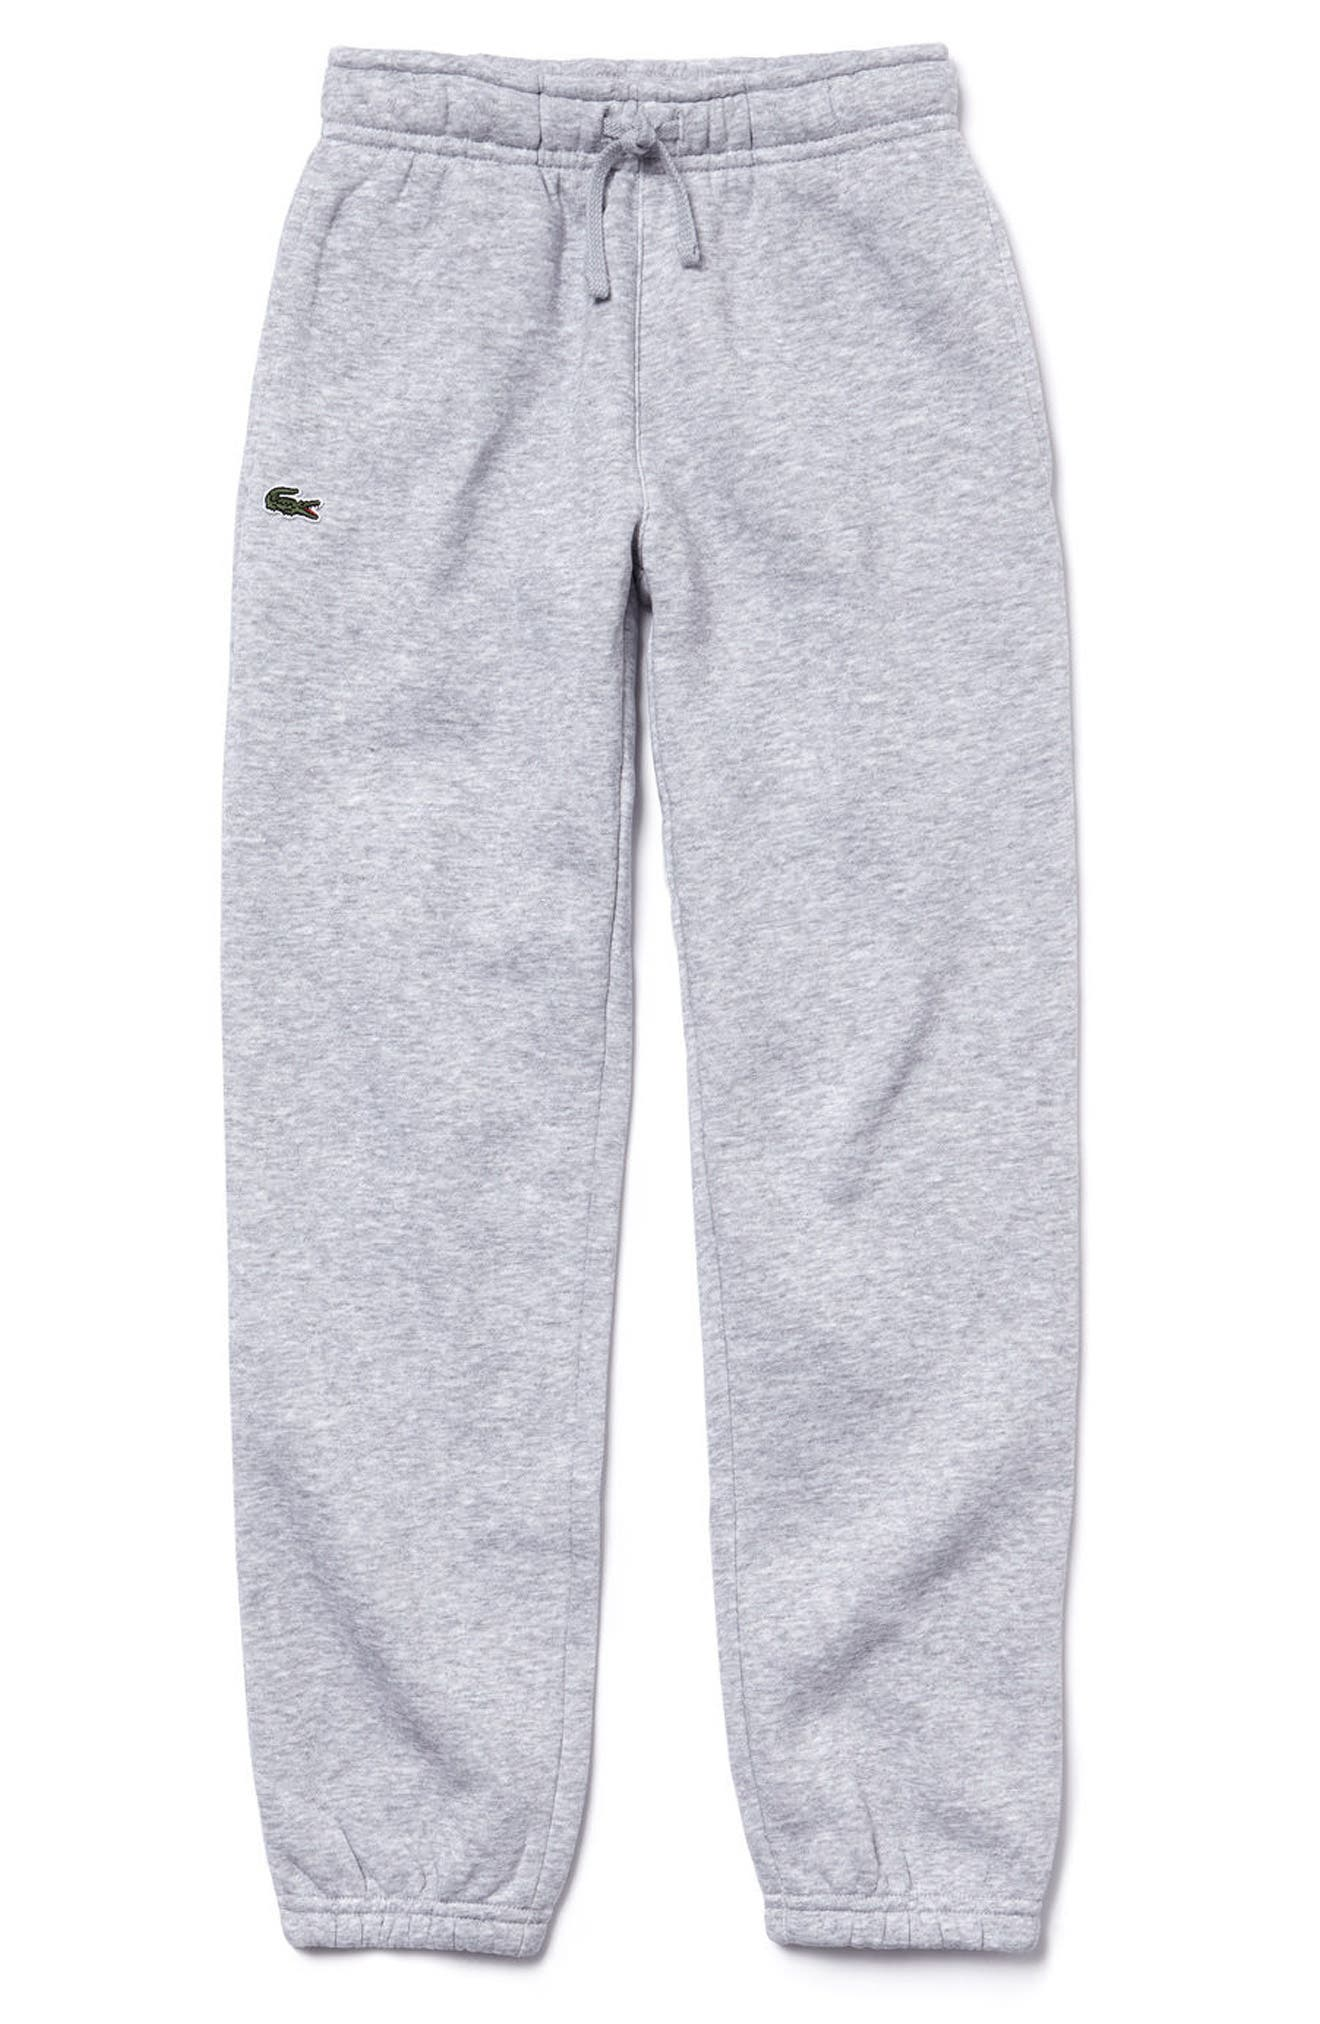 Sport Sweatpants,                             Main thumbnail 1, color,                             020